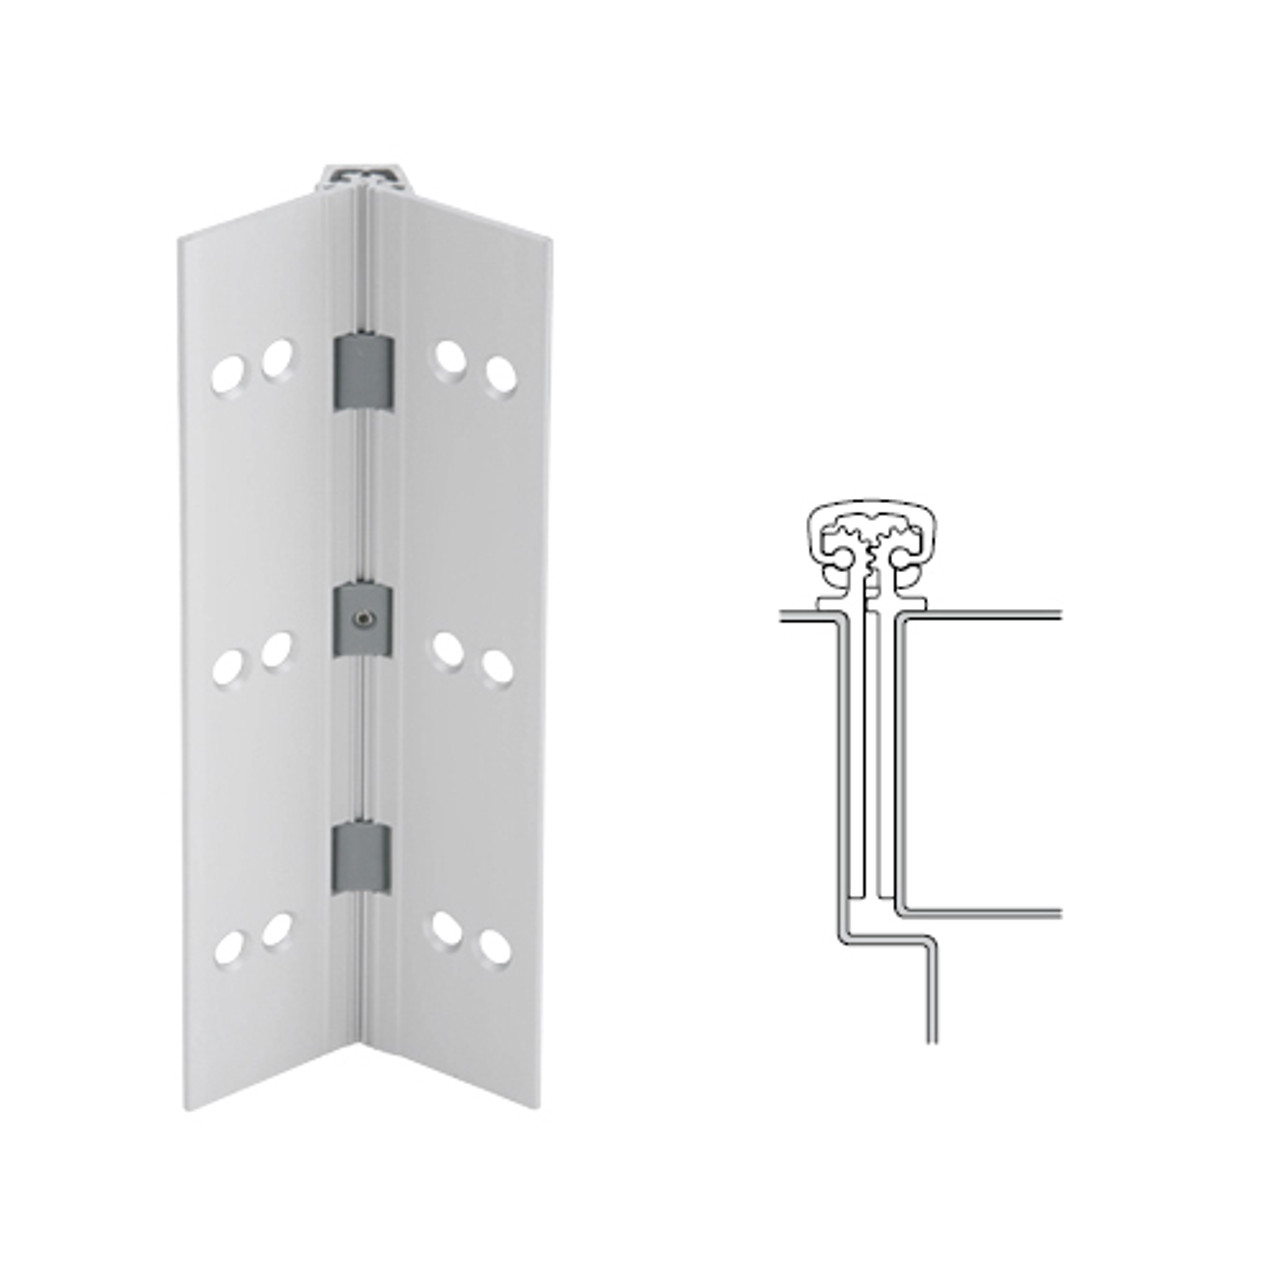 027XY-US28-120-SECWDWD IVES Full Mortise Continuous Geared Hinges with Security Screws - Hex Pin Drive in Satin Aluminum